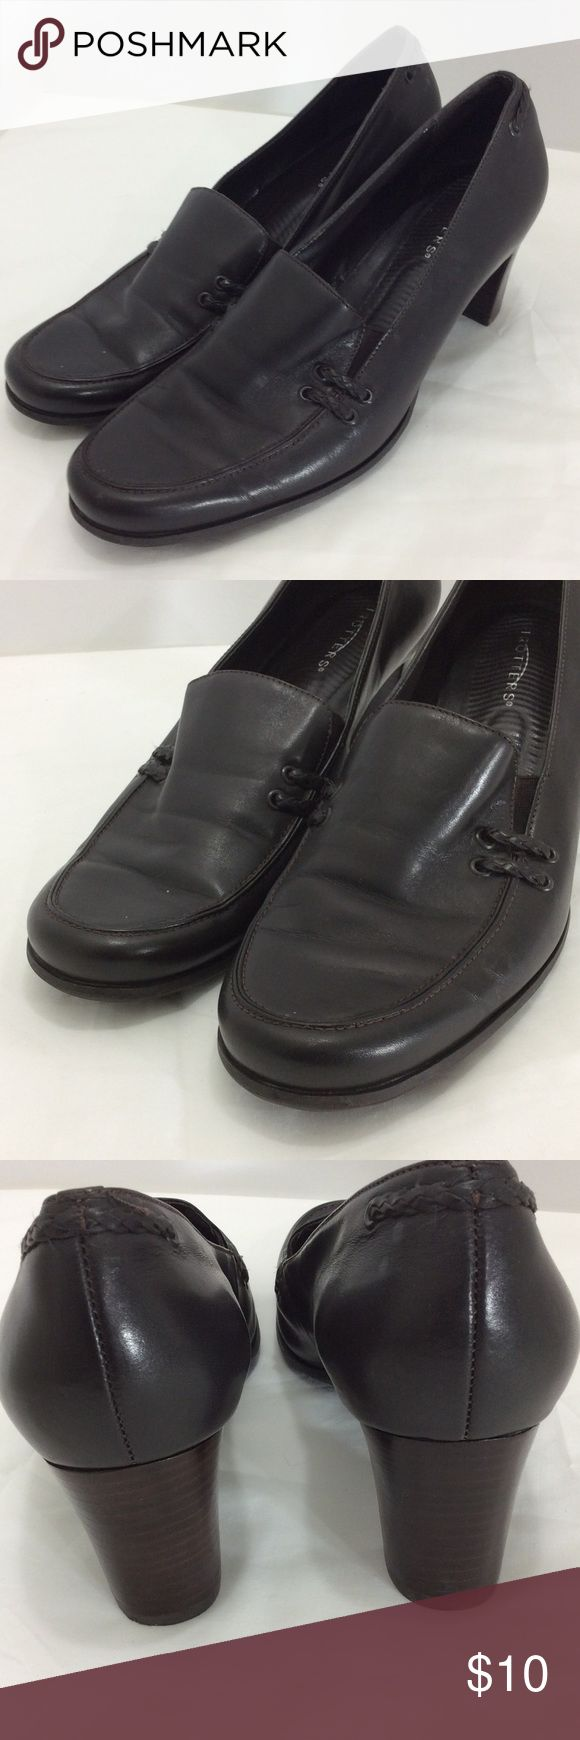 Trotters ladies leather shoes sz 10 US This sale is for excellent used ladies brown shoes. THe size is 10US. Thanks. trotters Shoes